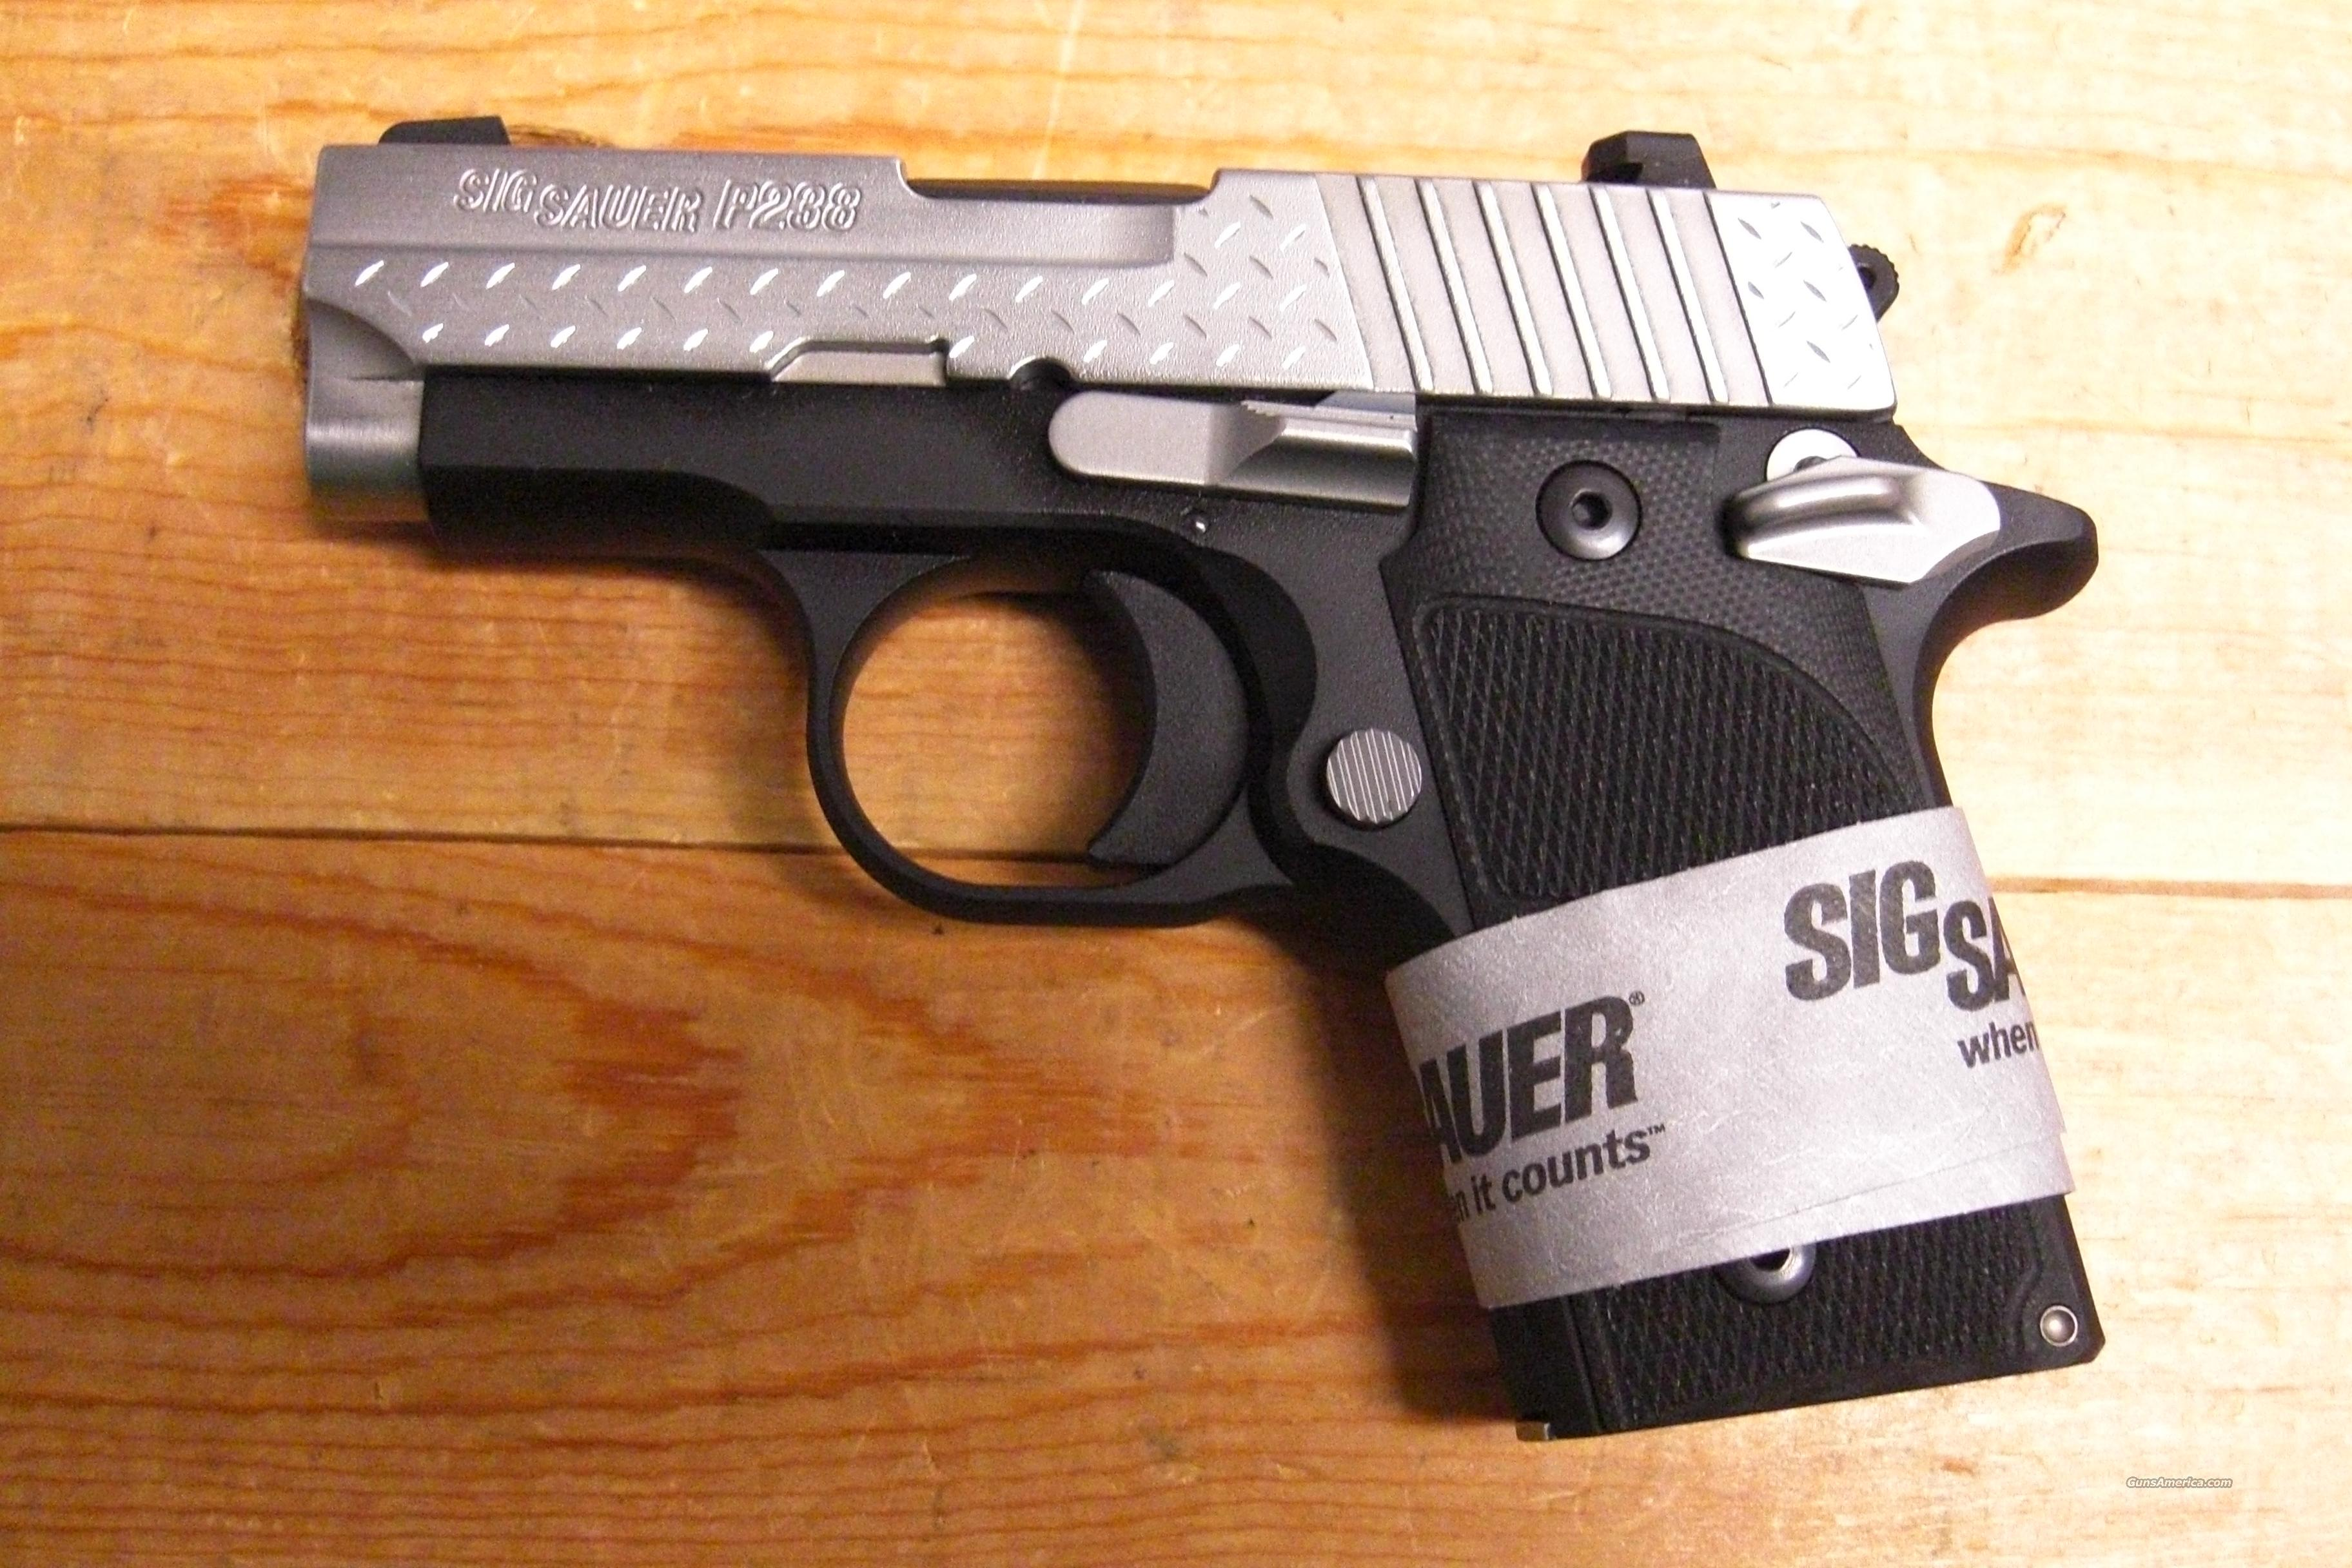 P238  w/Night Sights, stainless slide  Guns > Pistols > Sig - Sauer/Sigarms Pistols > Other